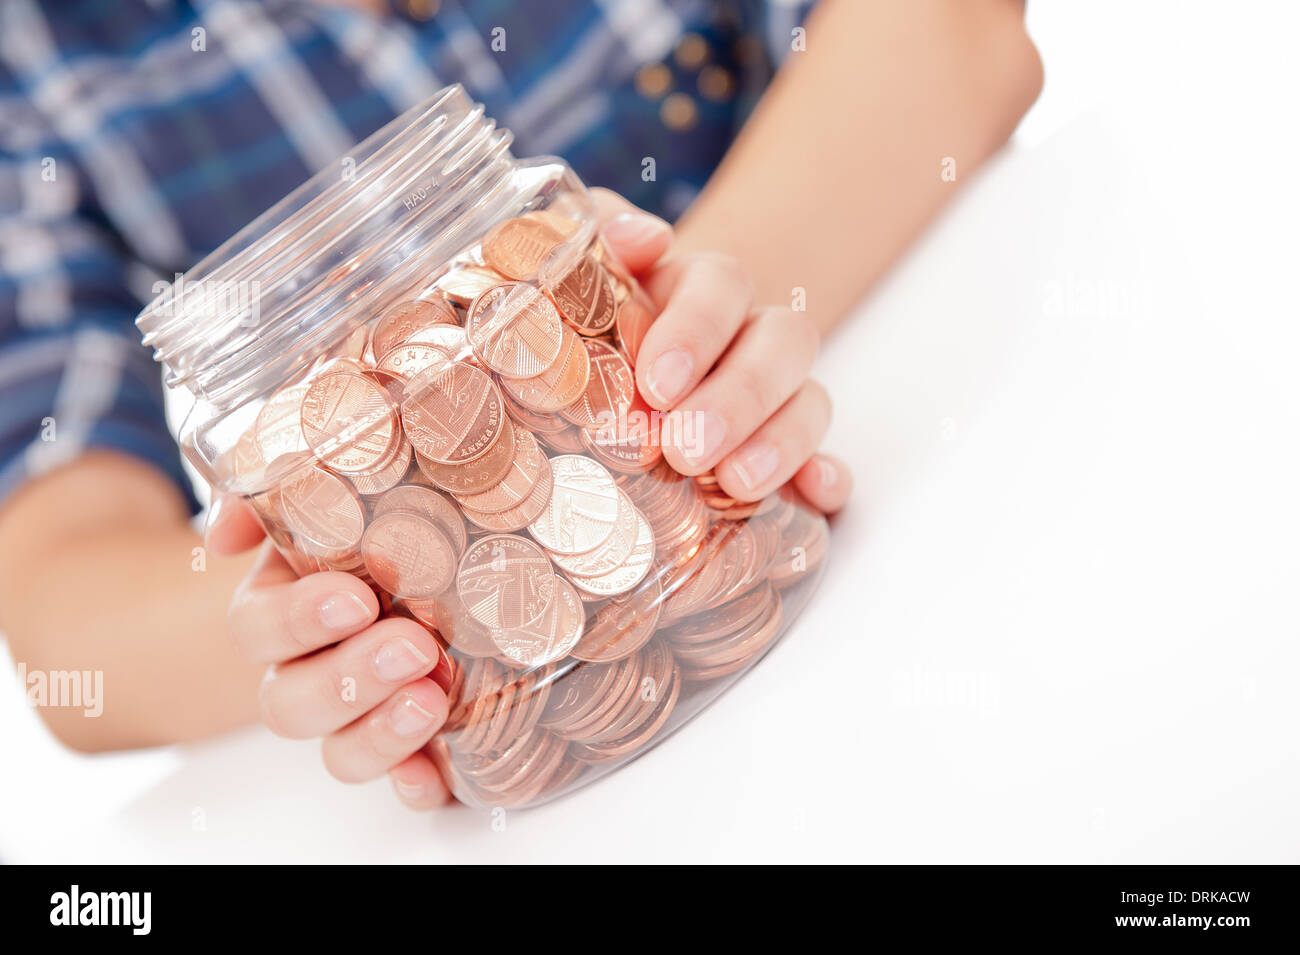 Young woman/girl with her hands holding a large savings jar full of British copper coins. - Stock Image